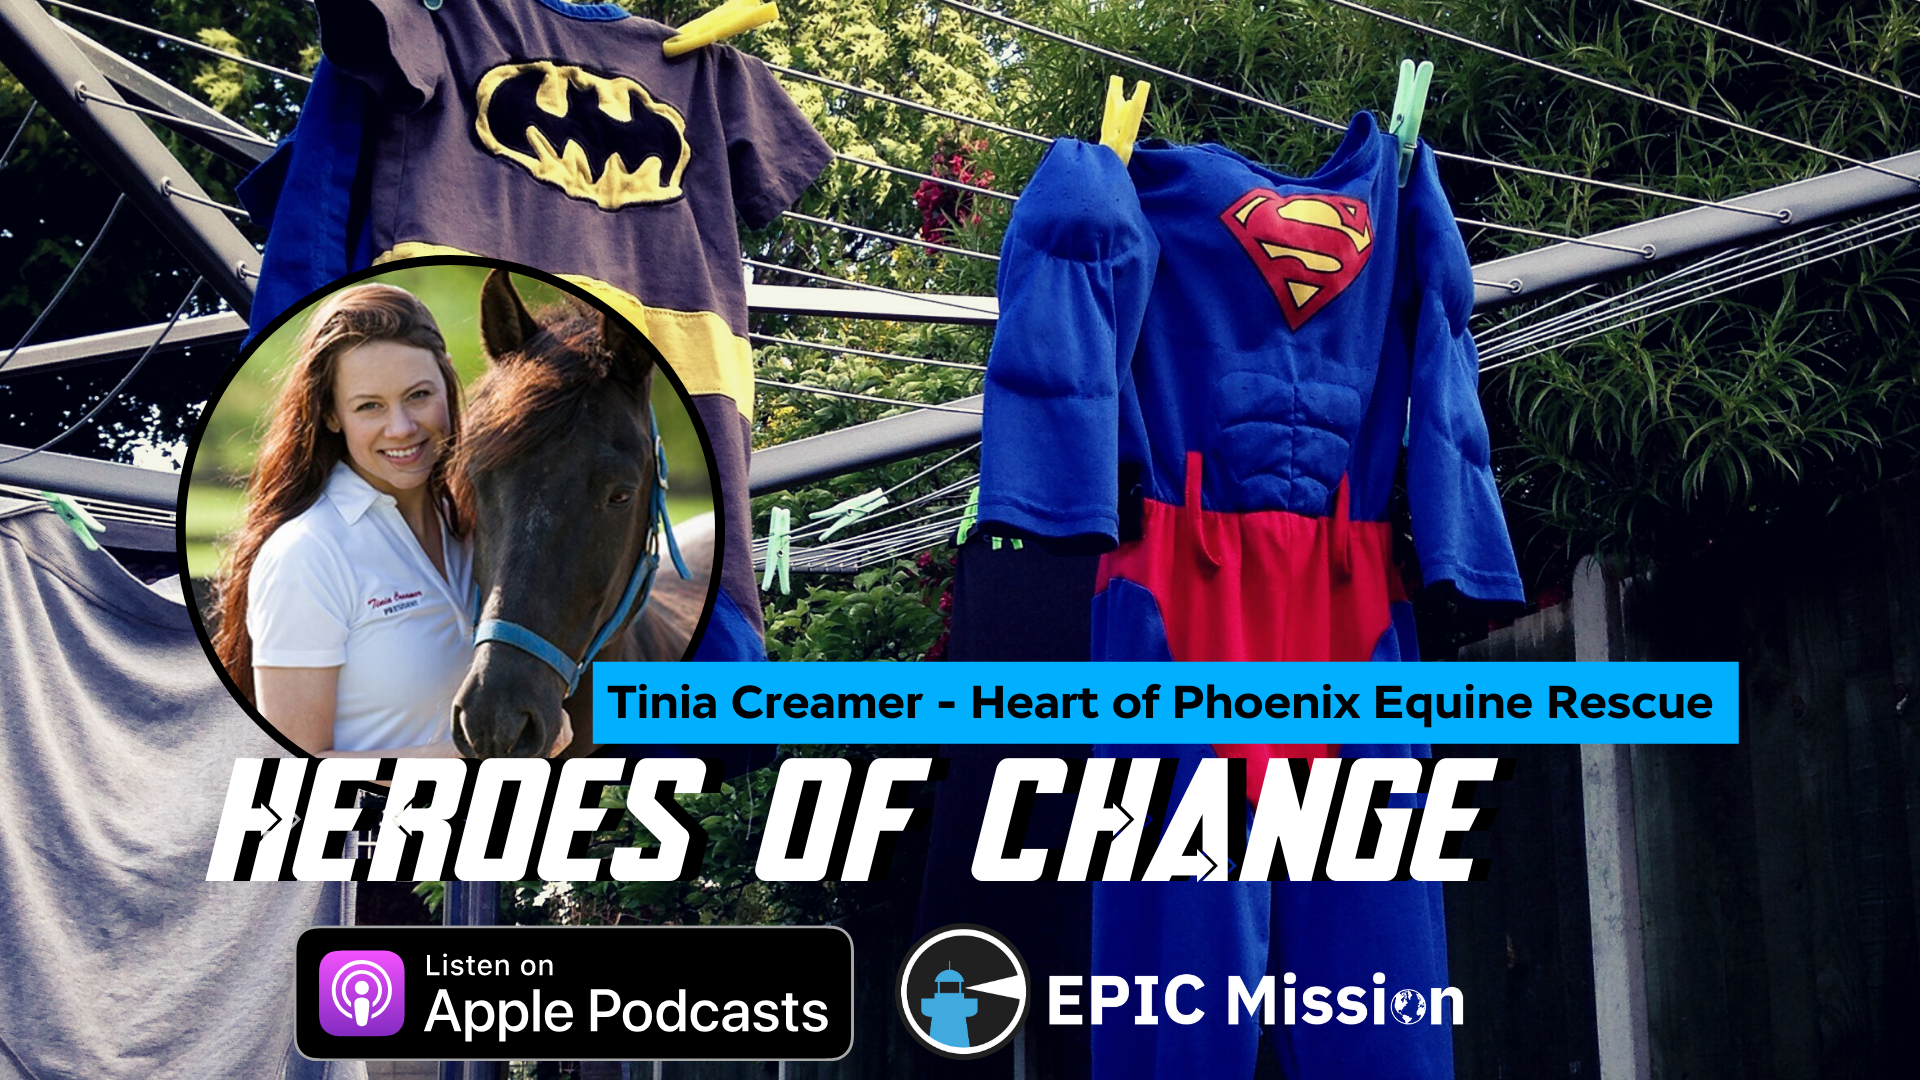 Heroes of Change: with Tinia Creamer of Heart of Phoenix Equine Rescue